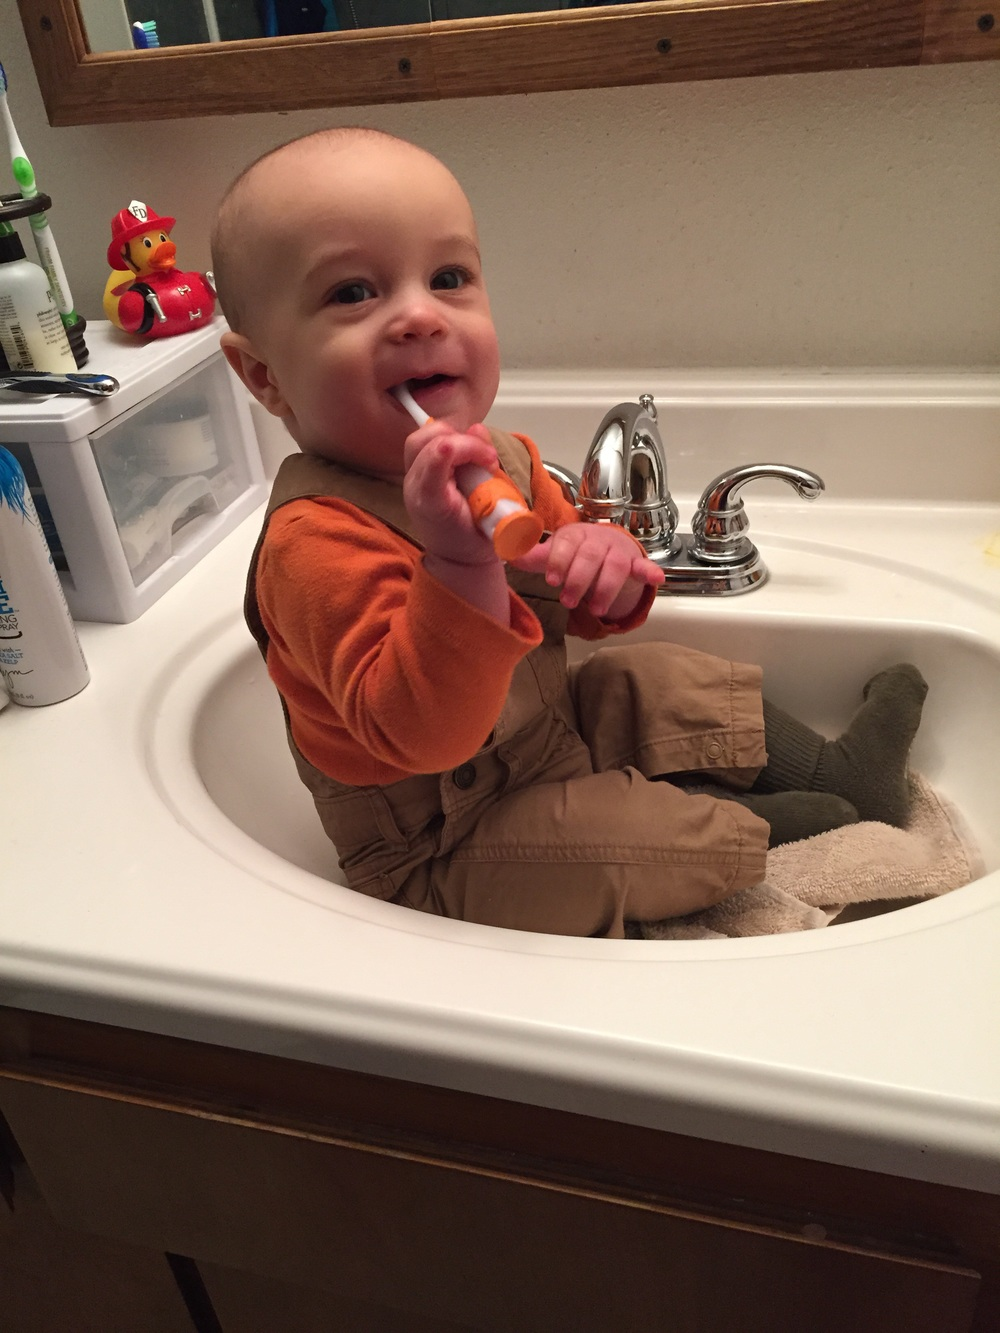 Noah in the sink brushing away.